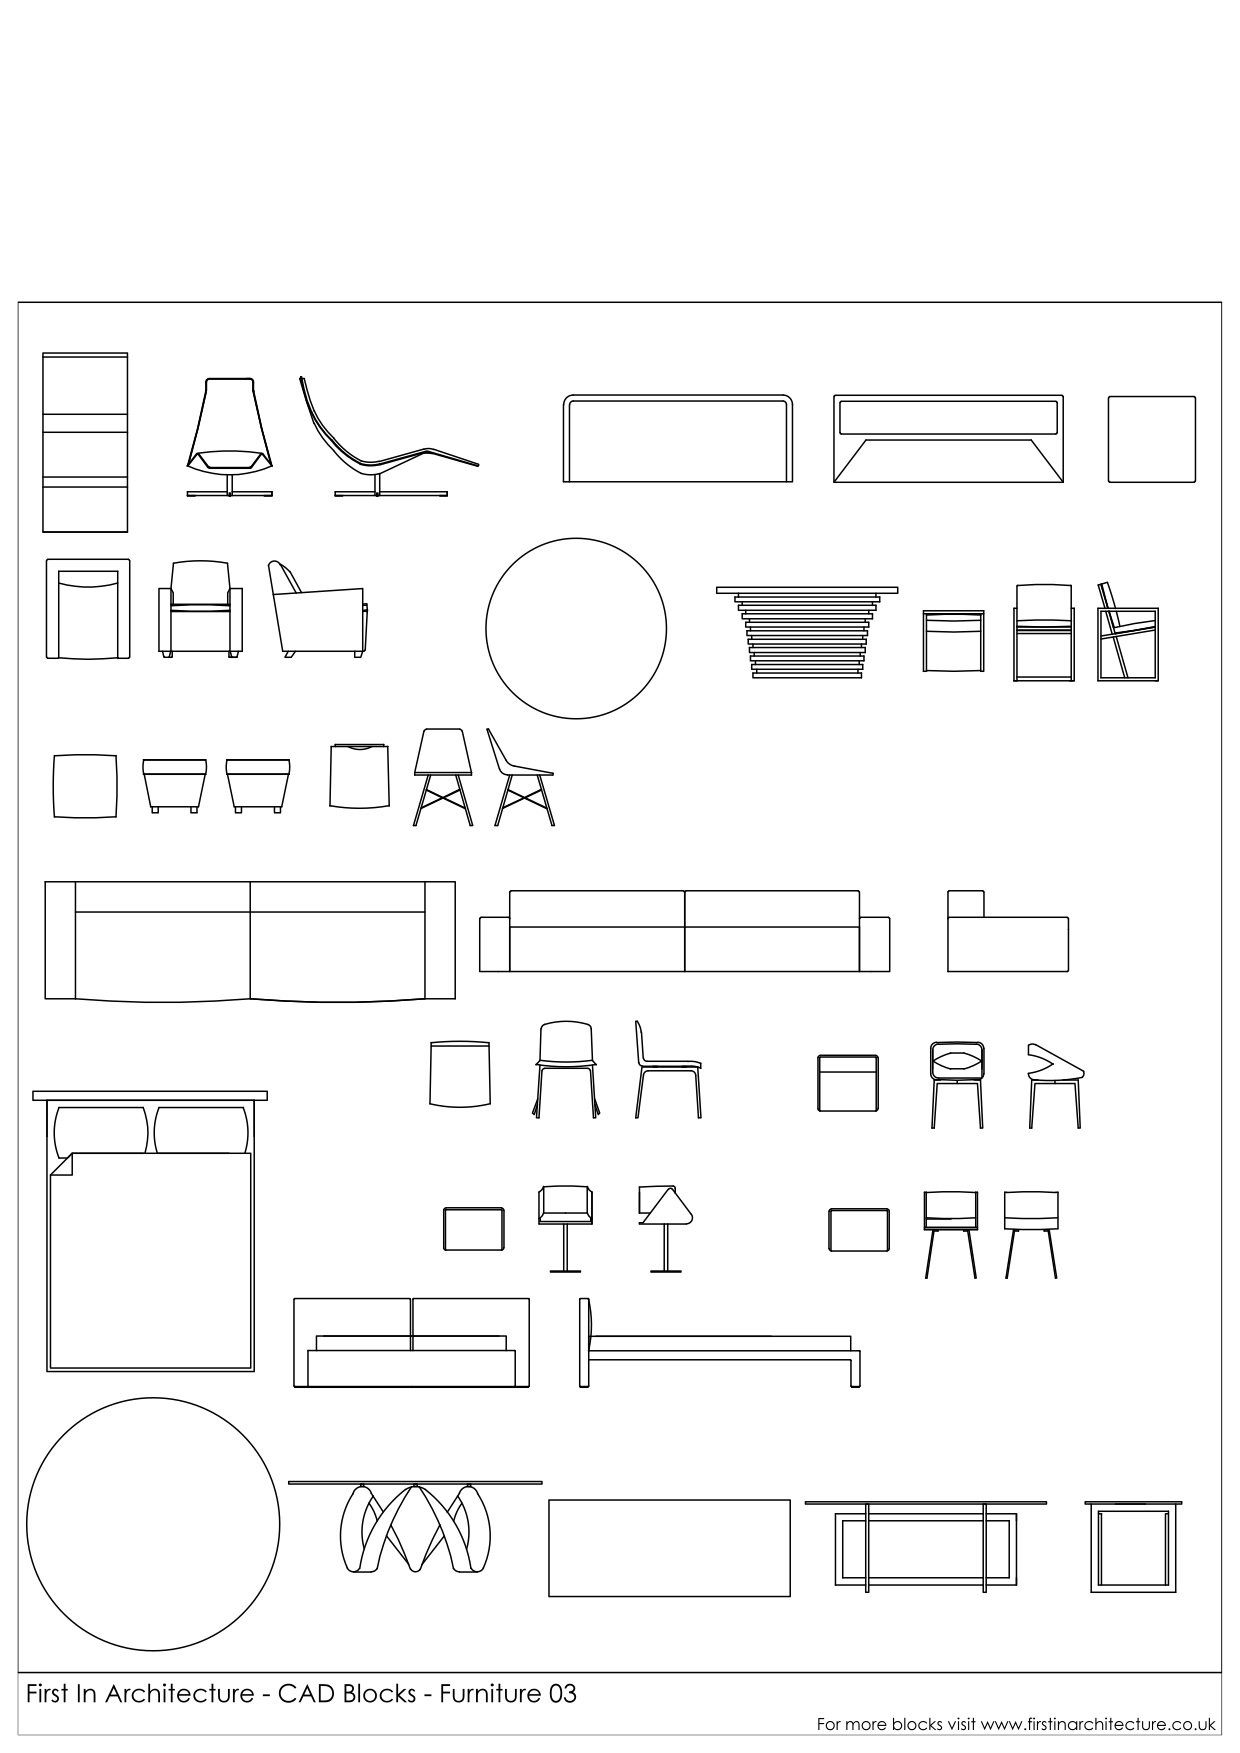 Cad Blocks Furniture Pack 03